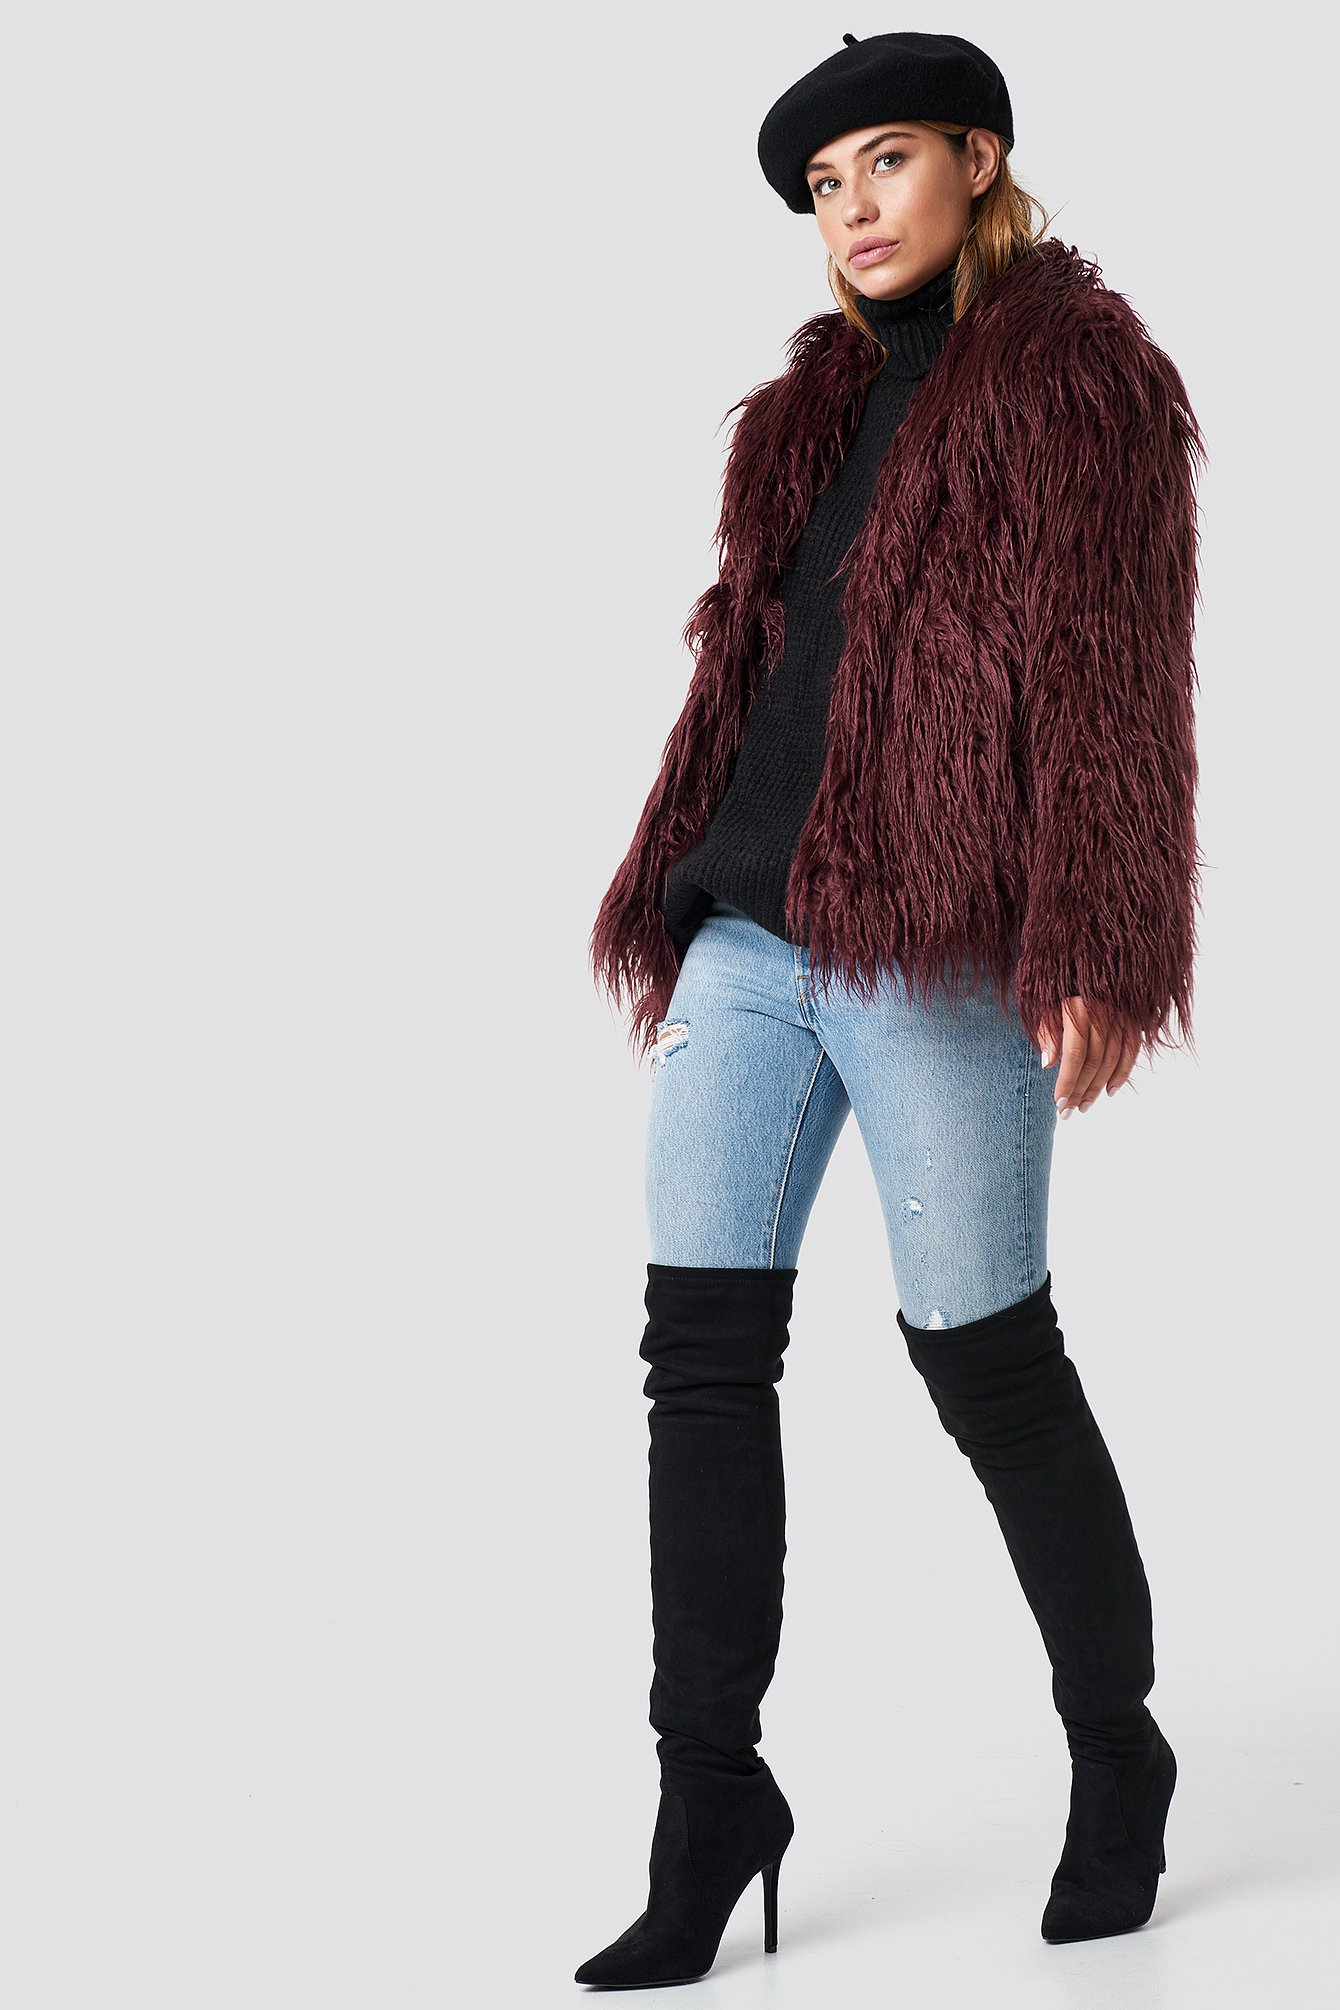 linn ahlborg x na-kd -  Fluffy Faux Fur Jacket - Red,Purple